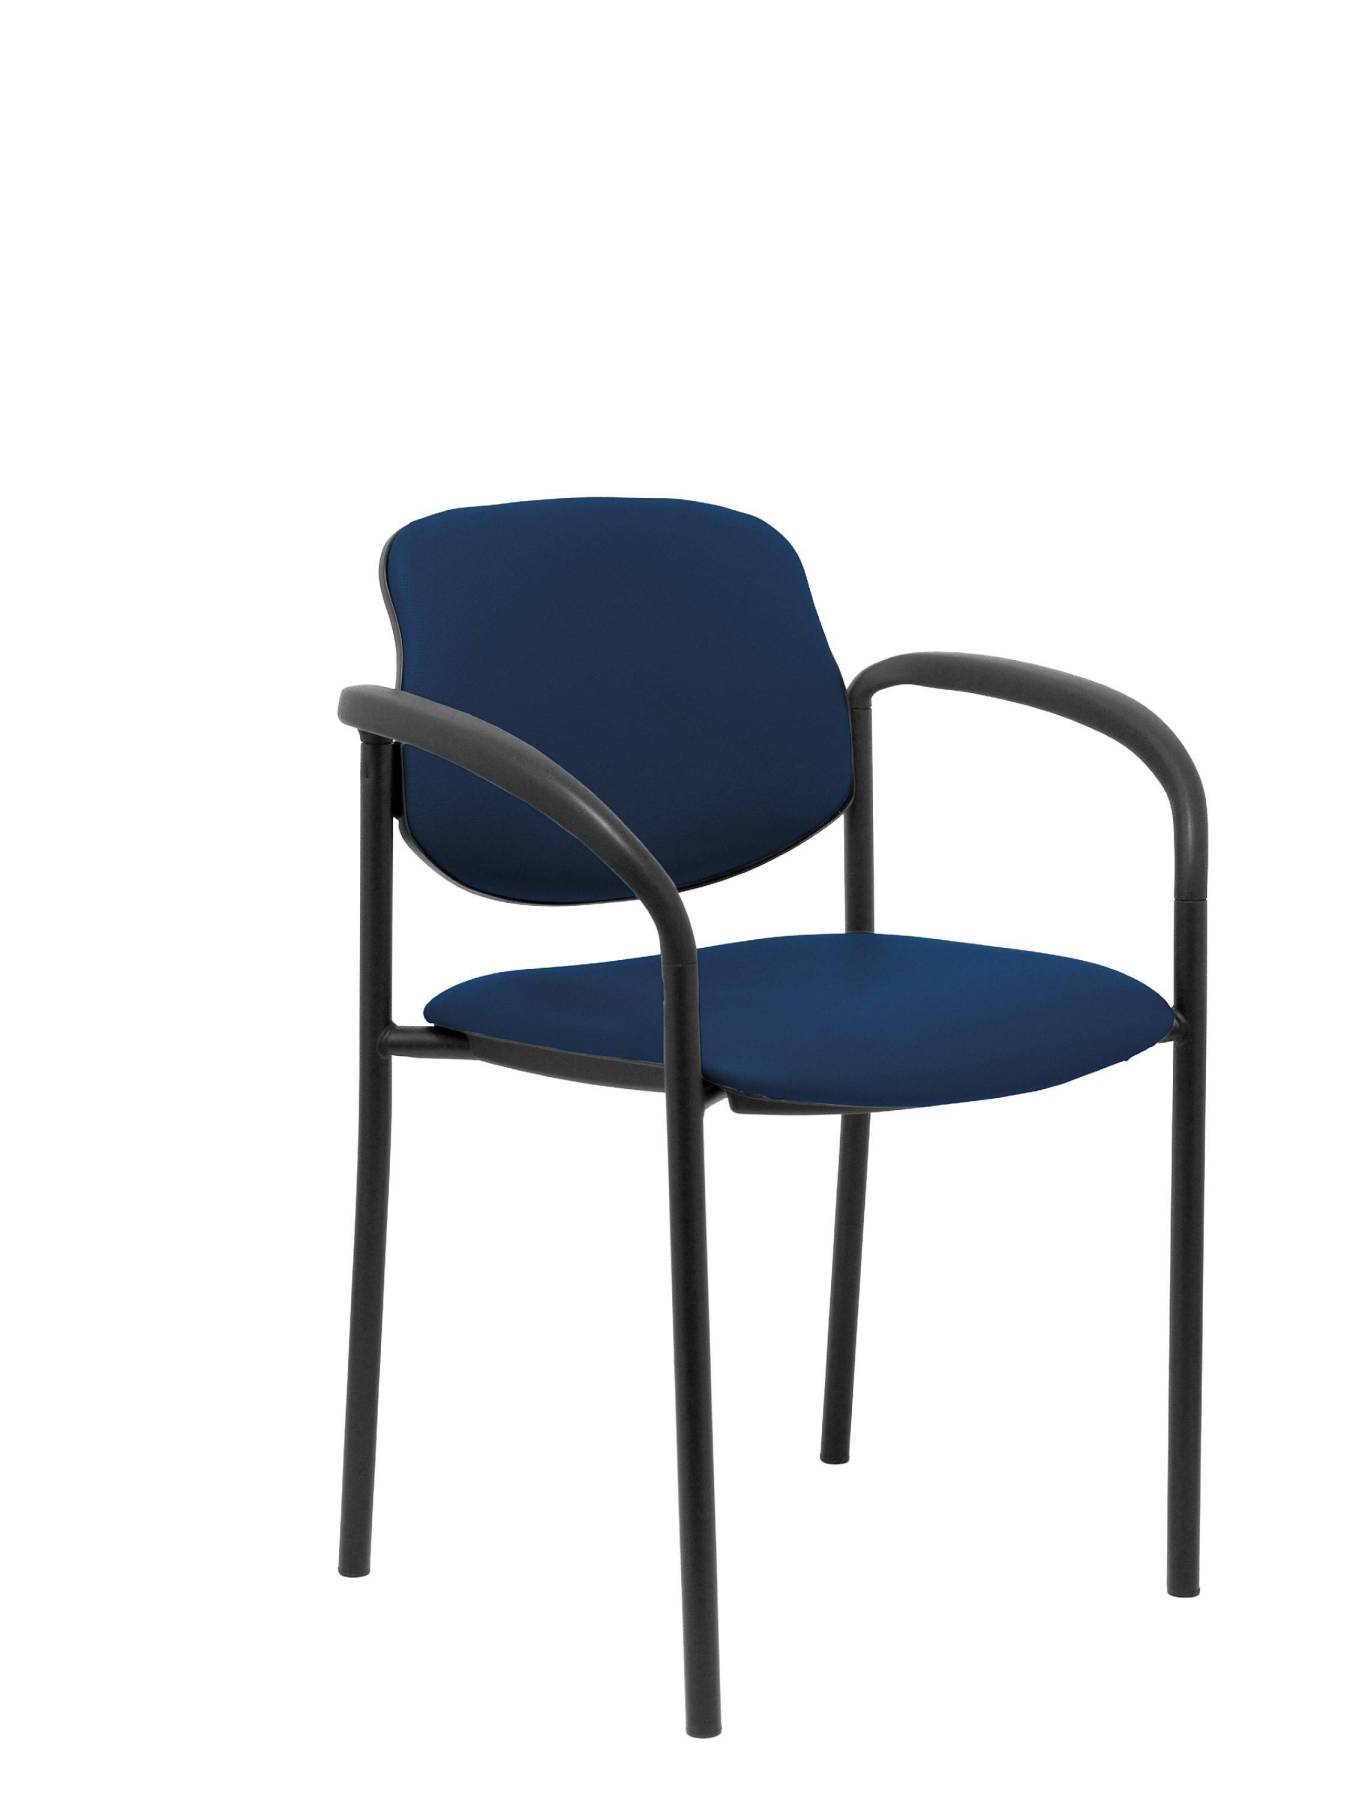 Visitor Chair 4's Topsy, With Arms And Estructrua Negro-up Seat And Backstop Upholstered In Tissue Similpiel Blue Marin